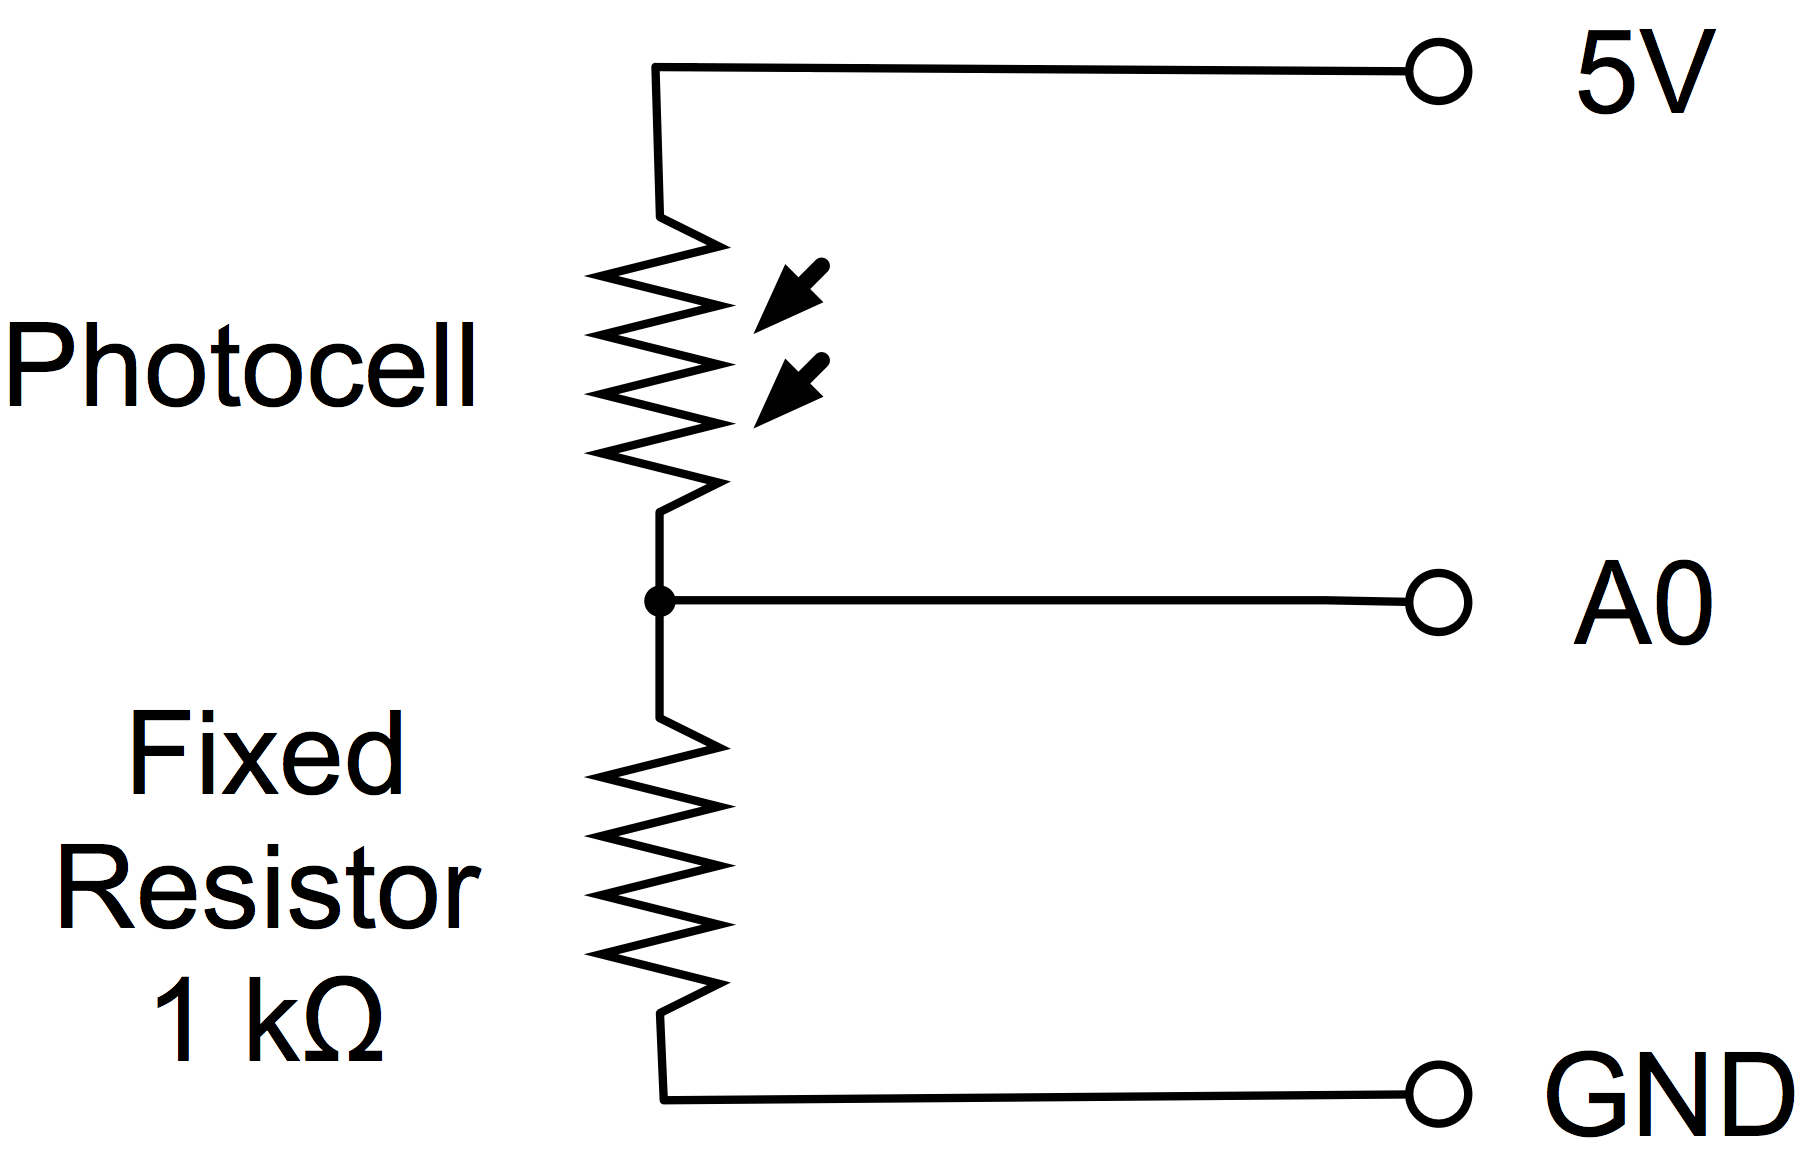 learn_arduino_LDR_schematic.png